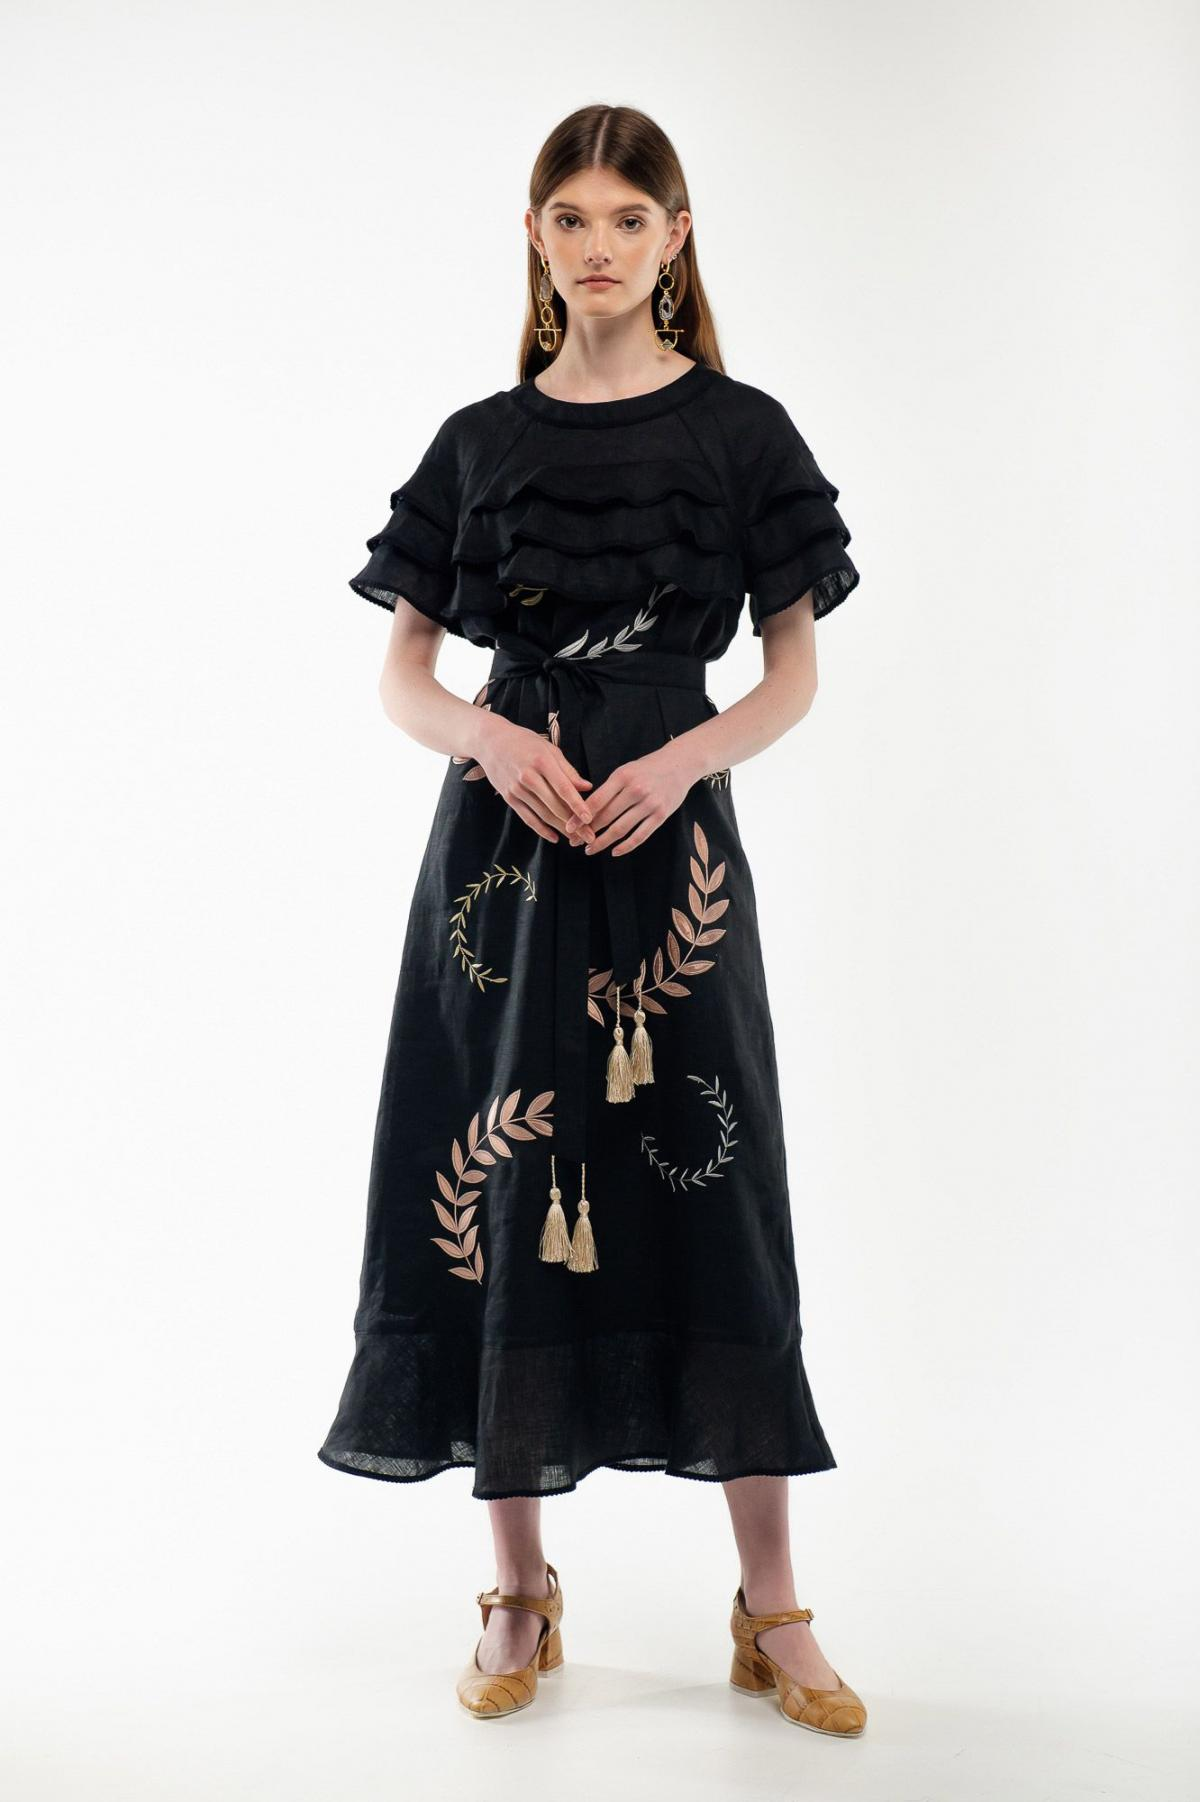 Embroidery dress black Miss. Photo №2. | Narodnyi dim Ukraine